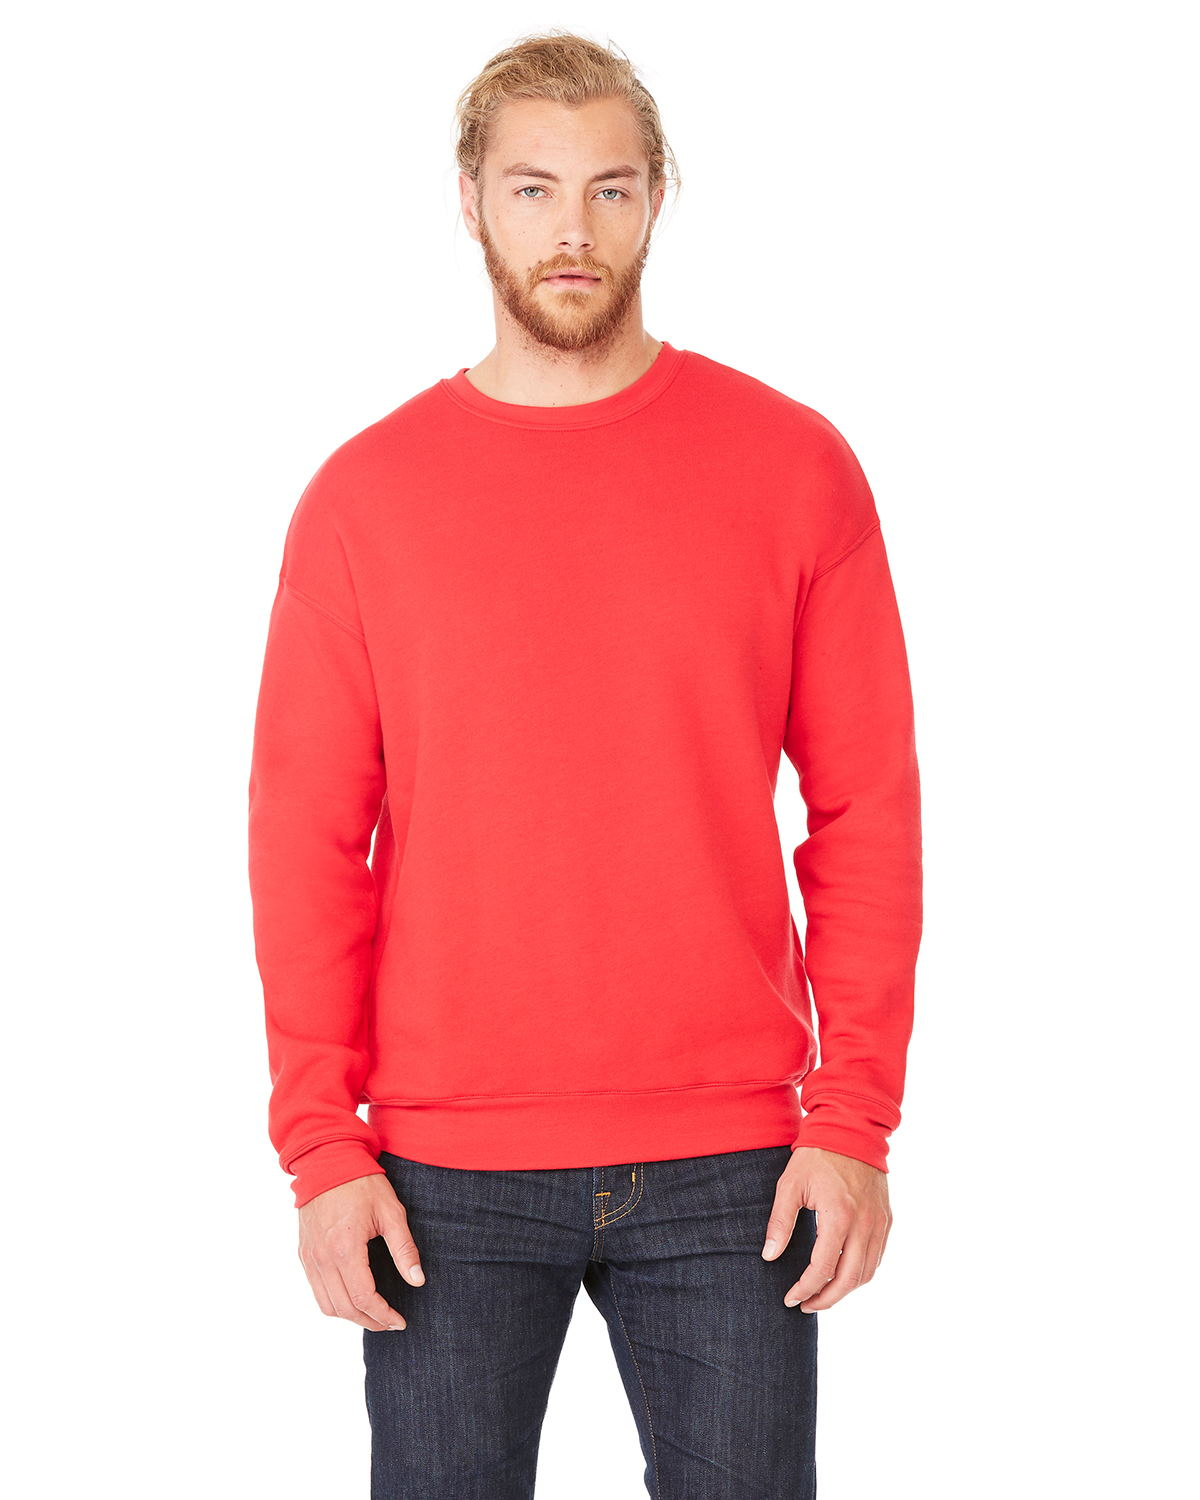 Bella + Canvas 3945 - Unisex Drop Shoulder Fleece